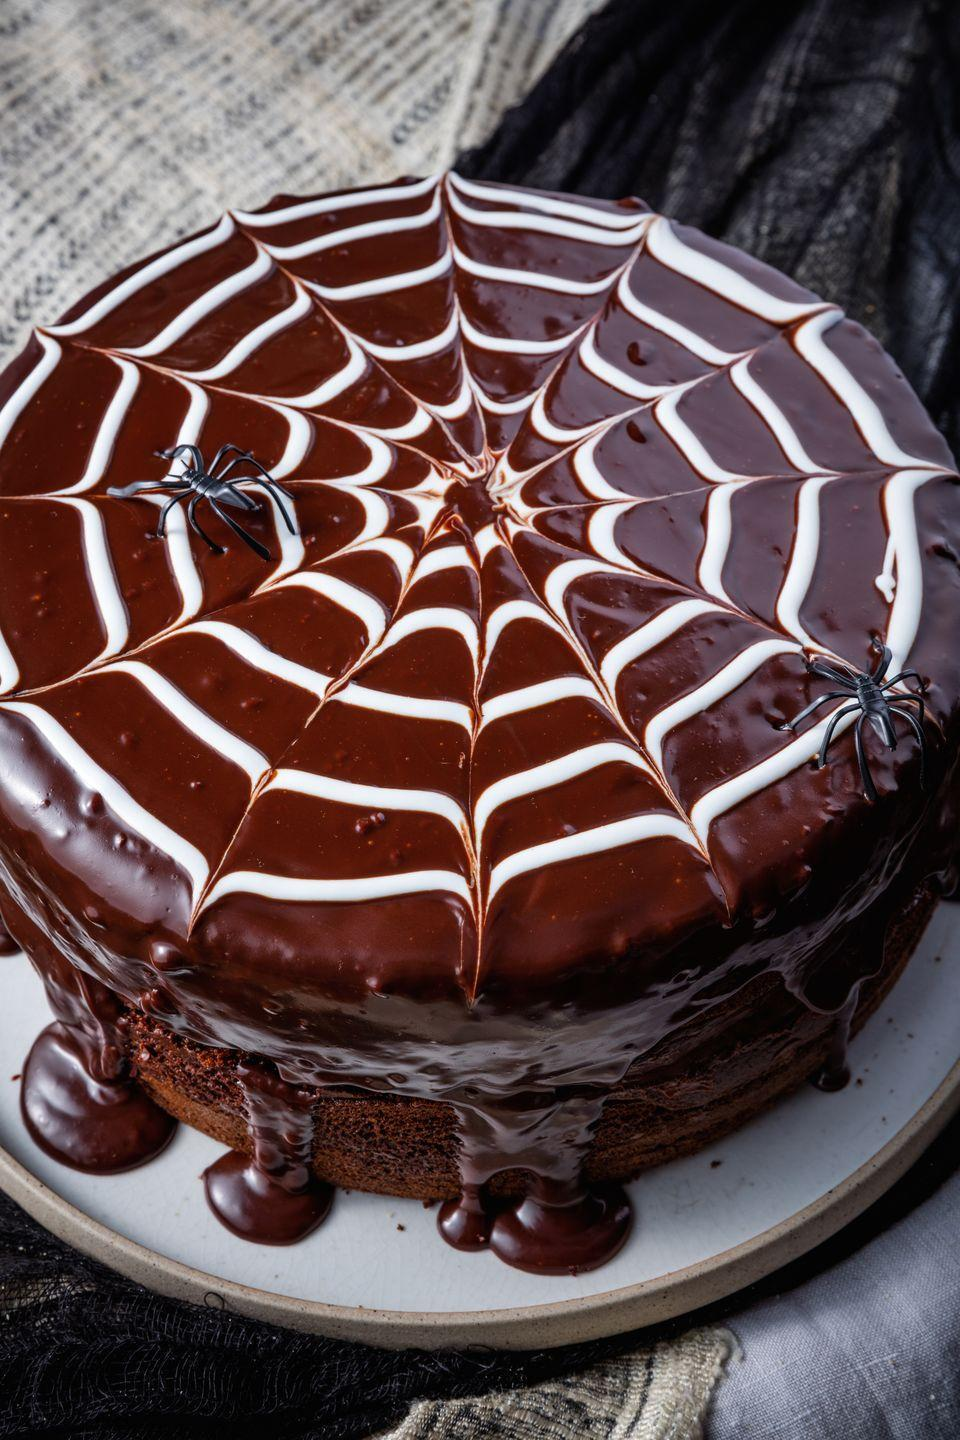 "<p>Nothing is going to come between us and chocolate cake. Not even spiders.</p><p>Get the recipe from <a href=""https://www.delish.com/holiday-recipes/halloween/recipes/a49352/spiderweb-cake-recipe/"" rel=""nofollow noopener"" target=""_blank"" data-ylk=""slk:Delish"" class=""link rapid-noclick-resp"">Delish</a>.</p>"